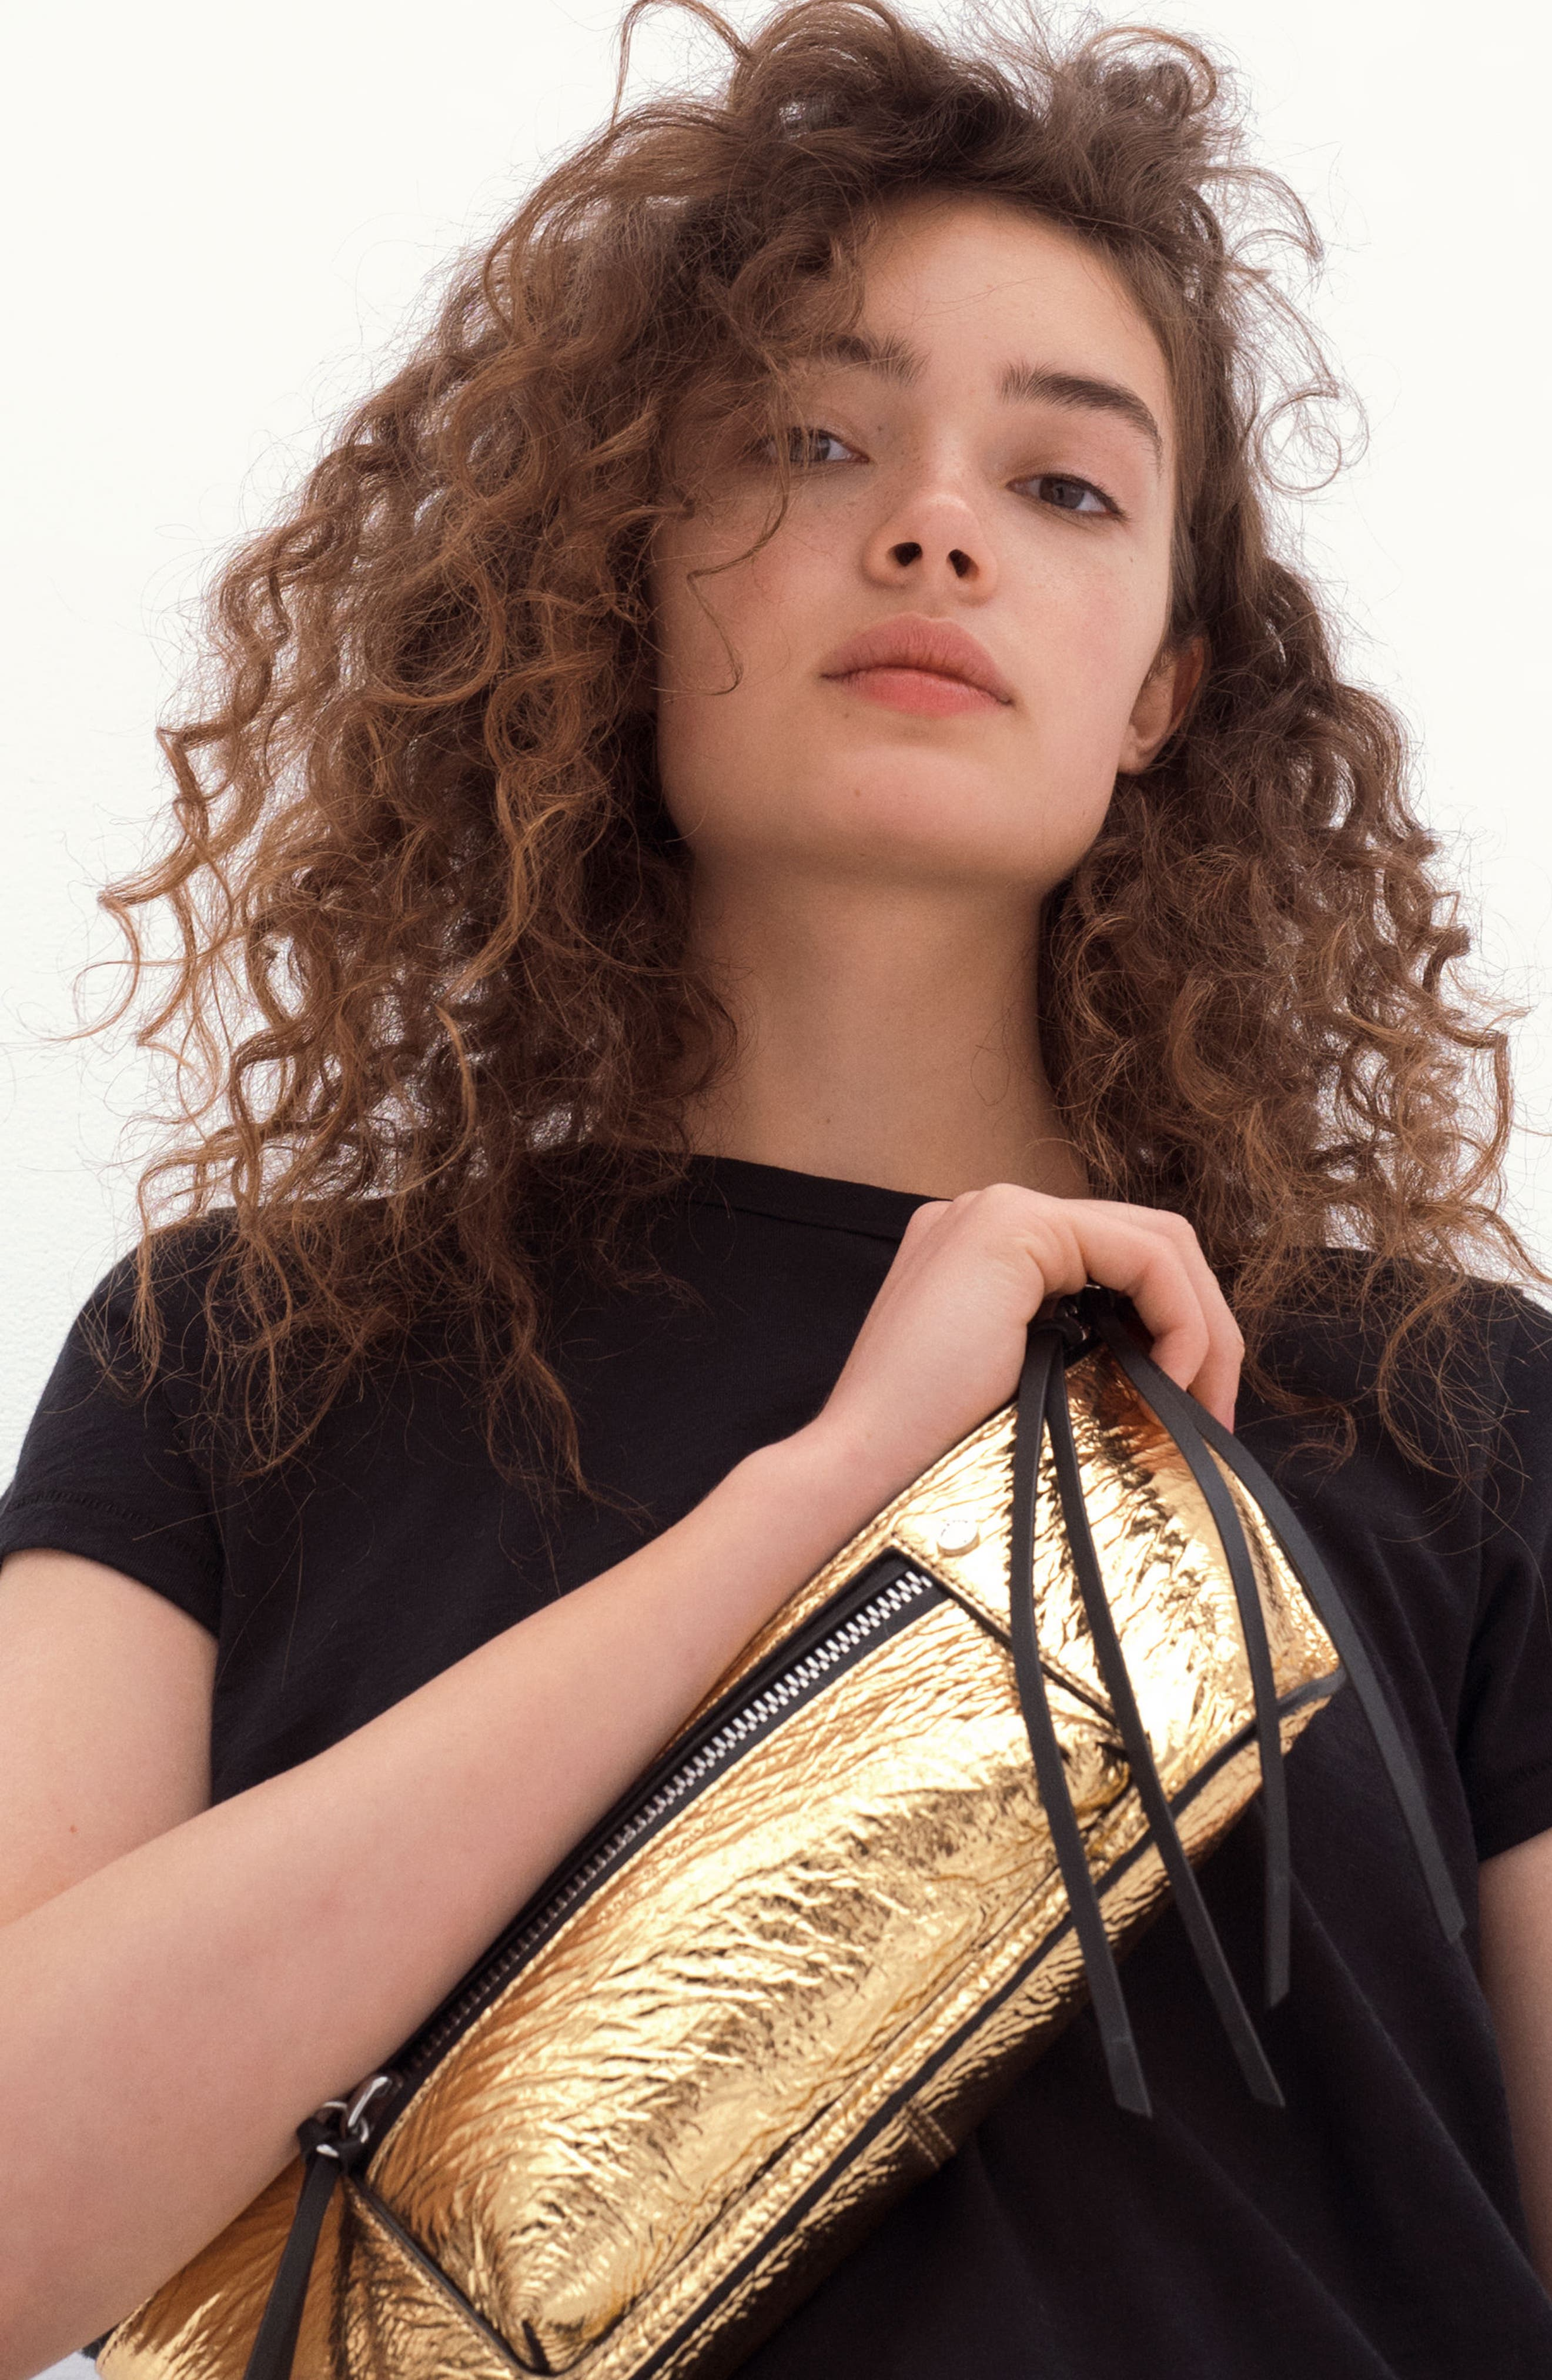 Small Elliot Leather Fanny Pack,                             Alternate thumbnail 9, color,                             GOLD